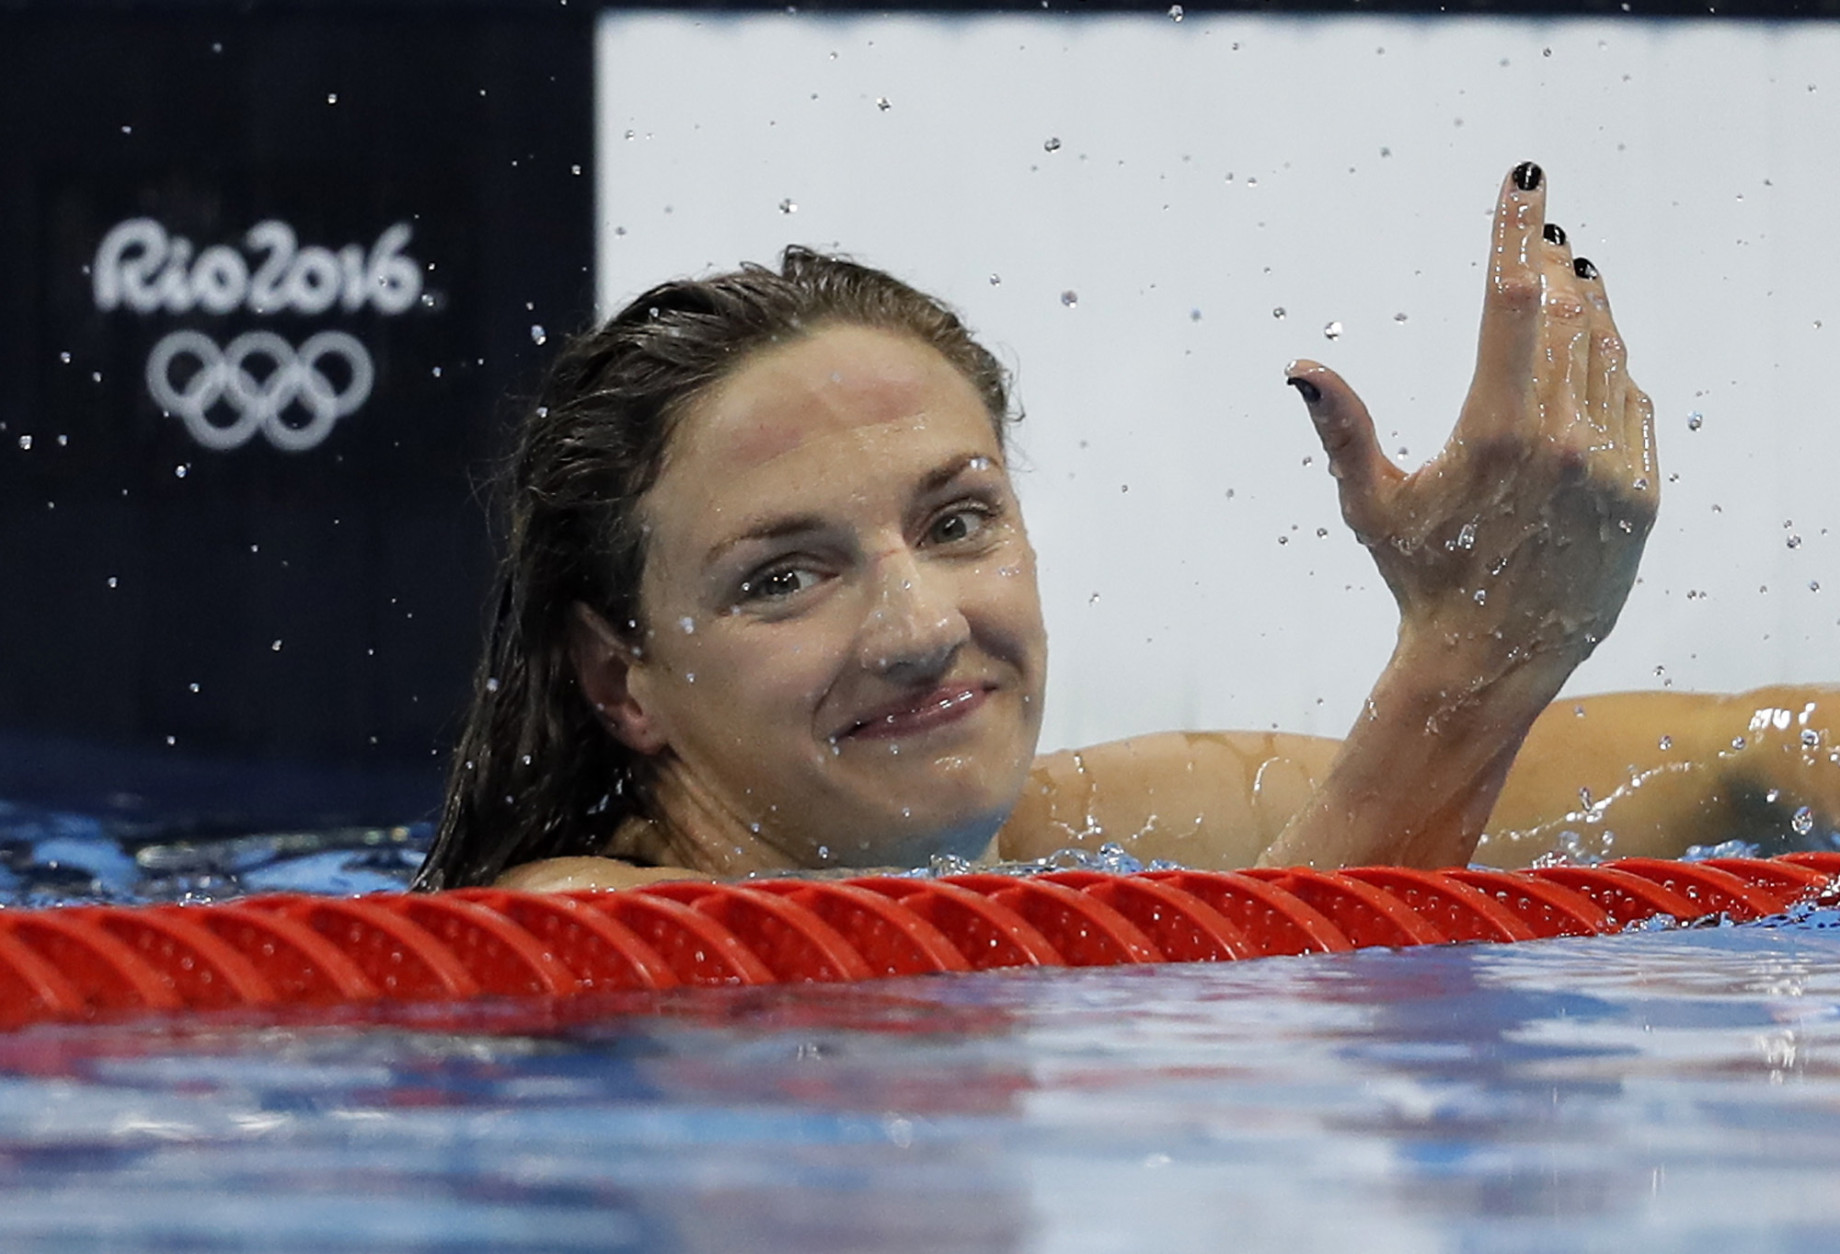 Hungary's Katinka Hosszu celebrates after winning the gold medal in the women's 100-meter backstroke final during the swimming competitions at the 2016 Summer Olympics, Monday, Aug. 8, 2016, in Rio de Janeiro, Brazil. (AP Photo/Michael Sohn)